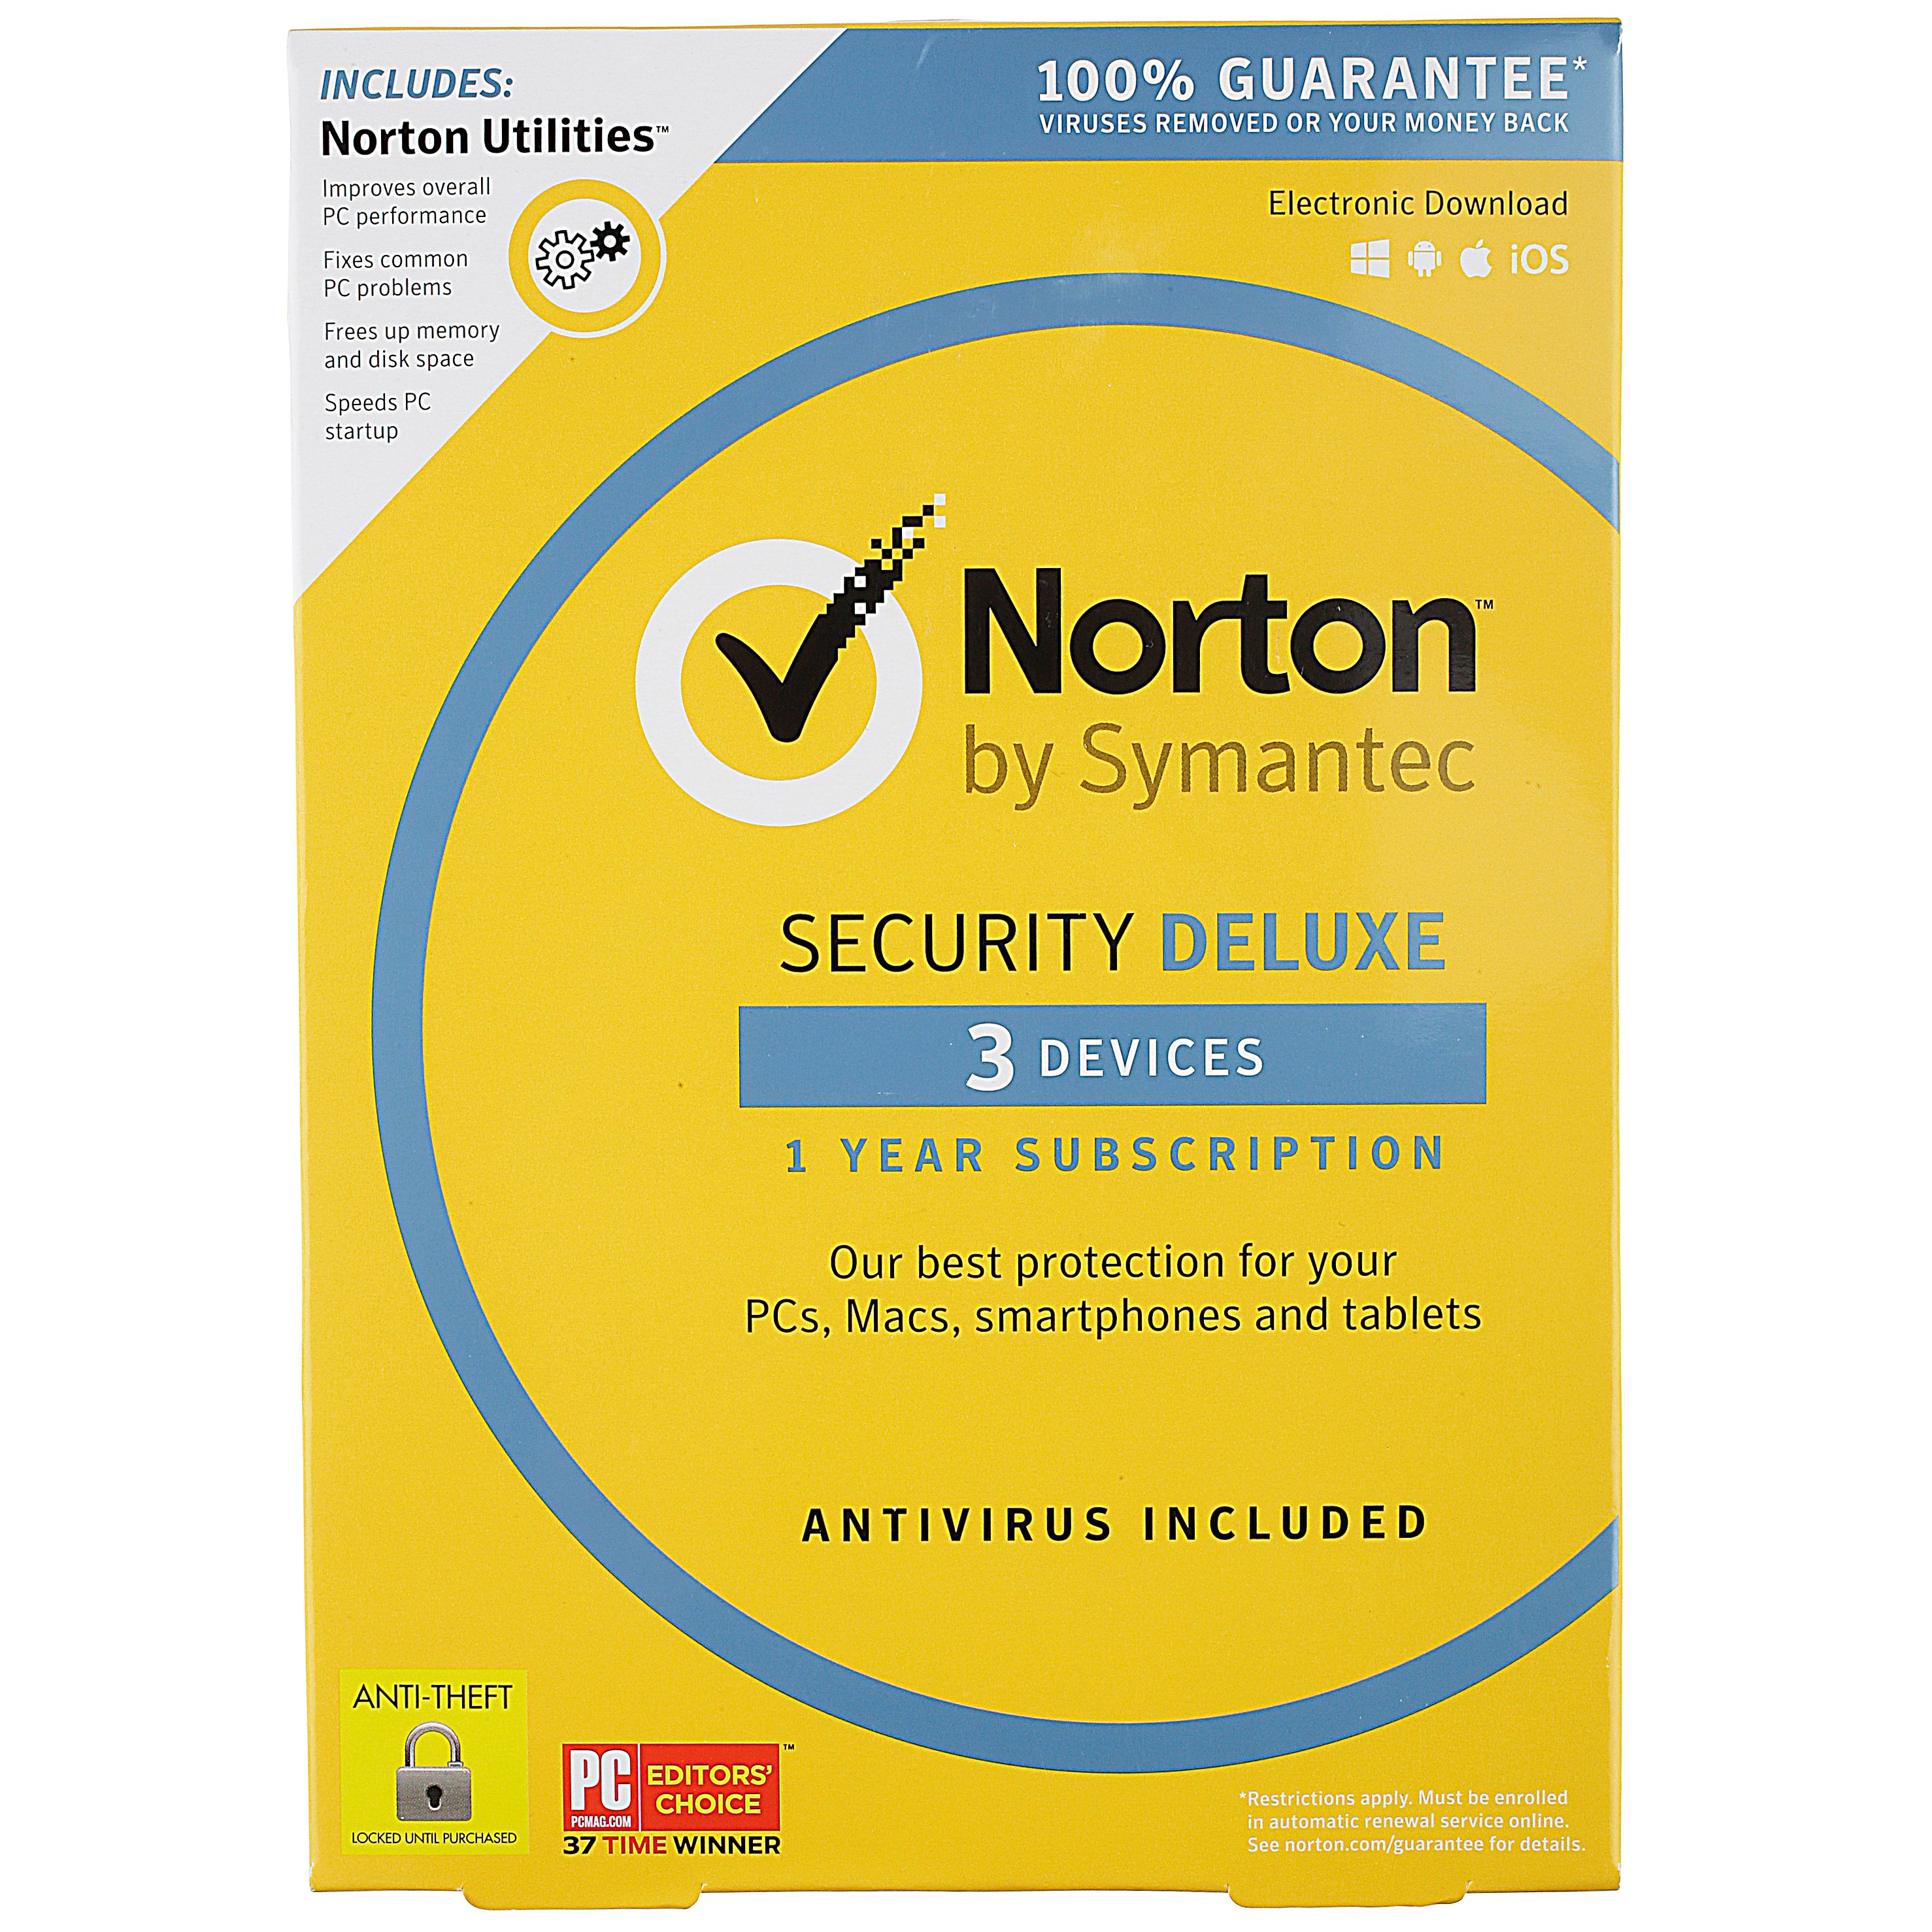 Norton by Symantec Security Deluxe 1 Year Subscription 3 Devices by Norton